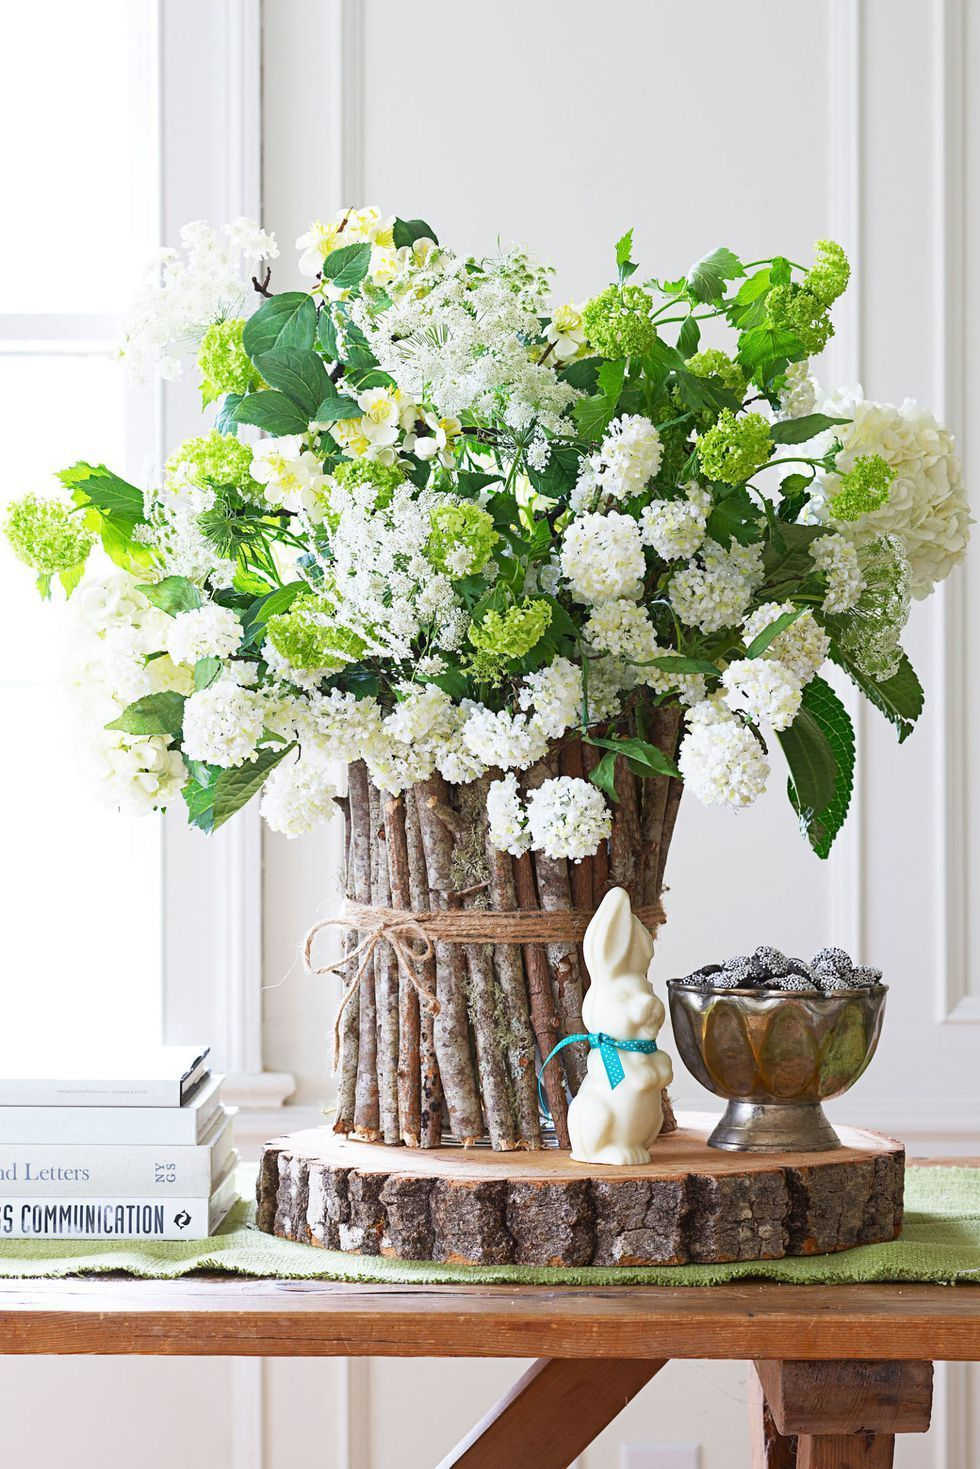 18 Spring Centerpieces To Diy Spring Centerpiece Ideas With Or Without Flowers